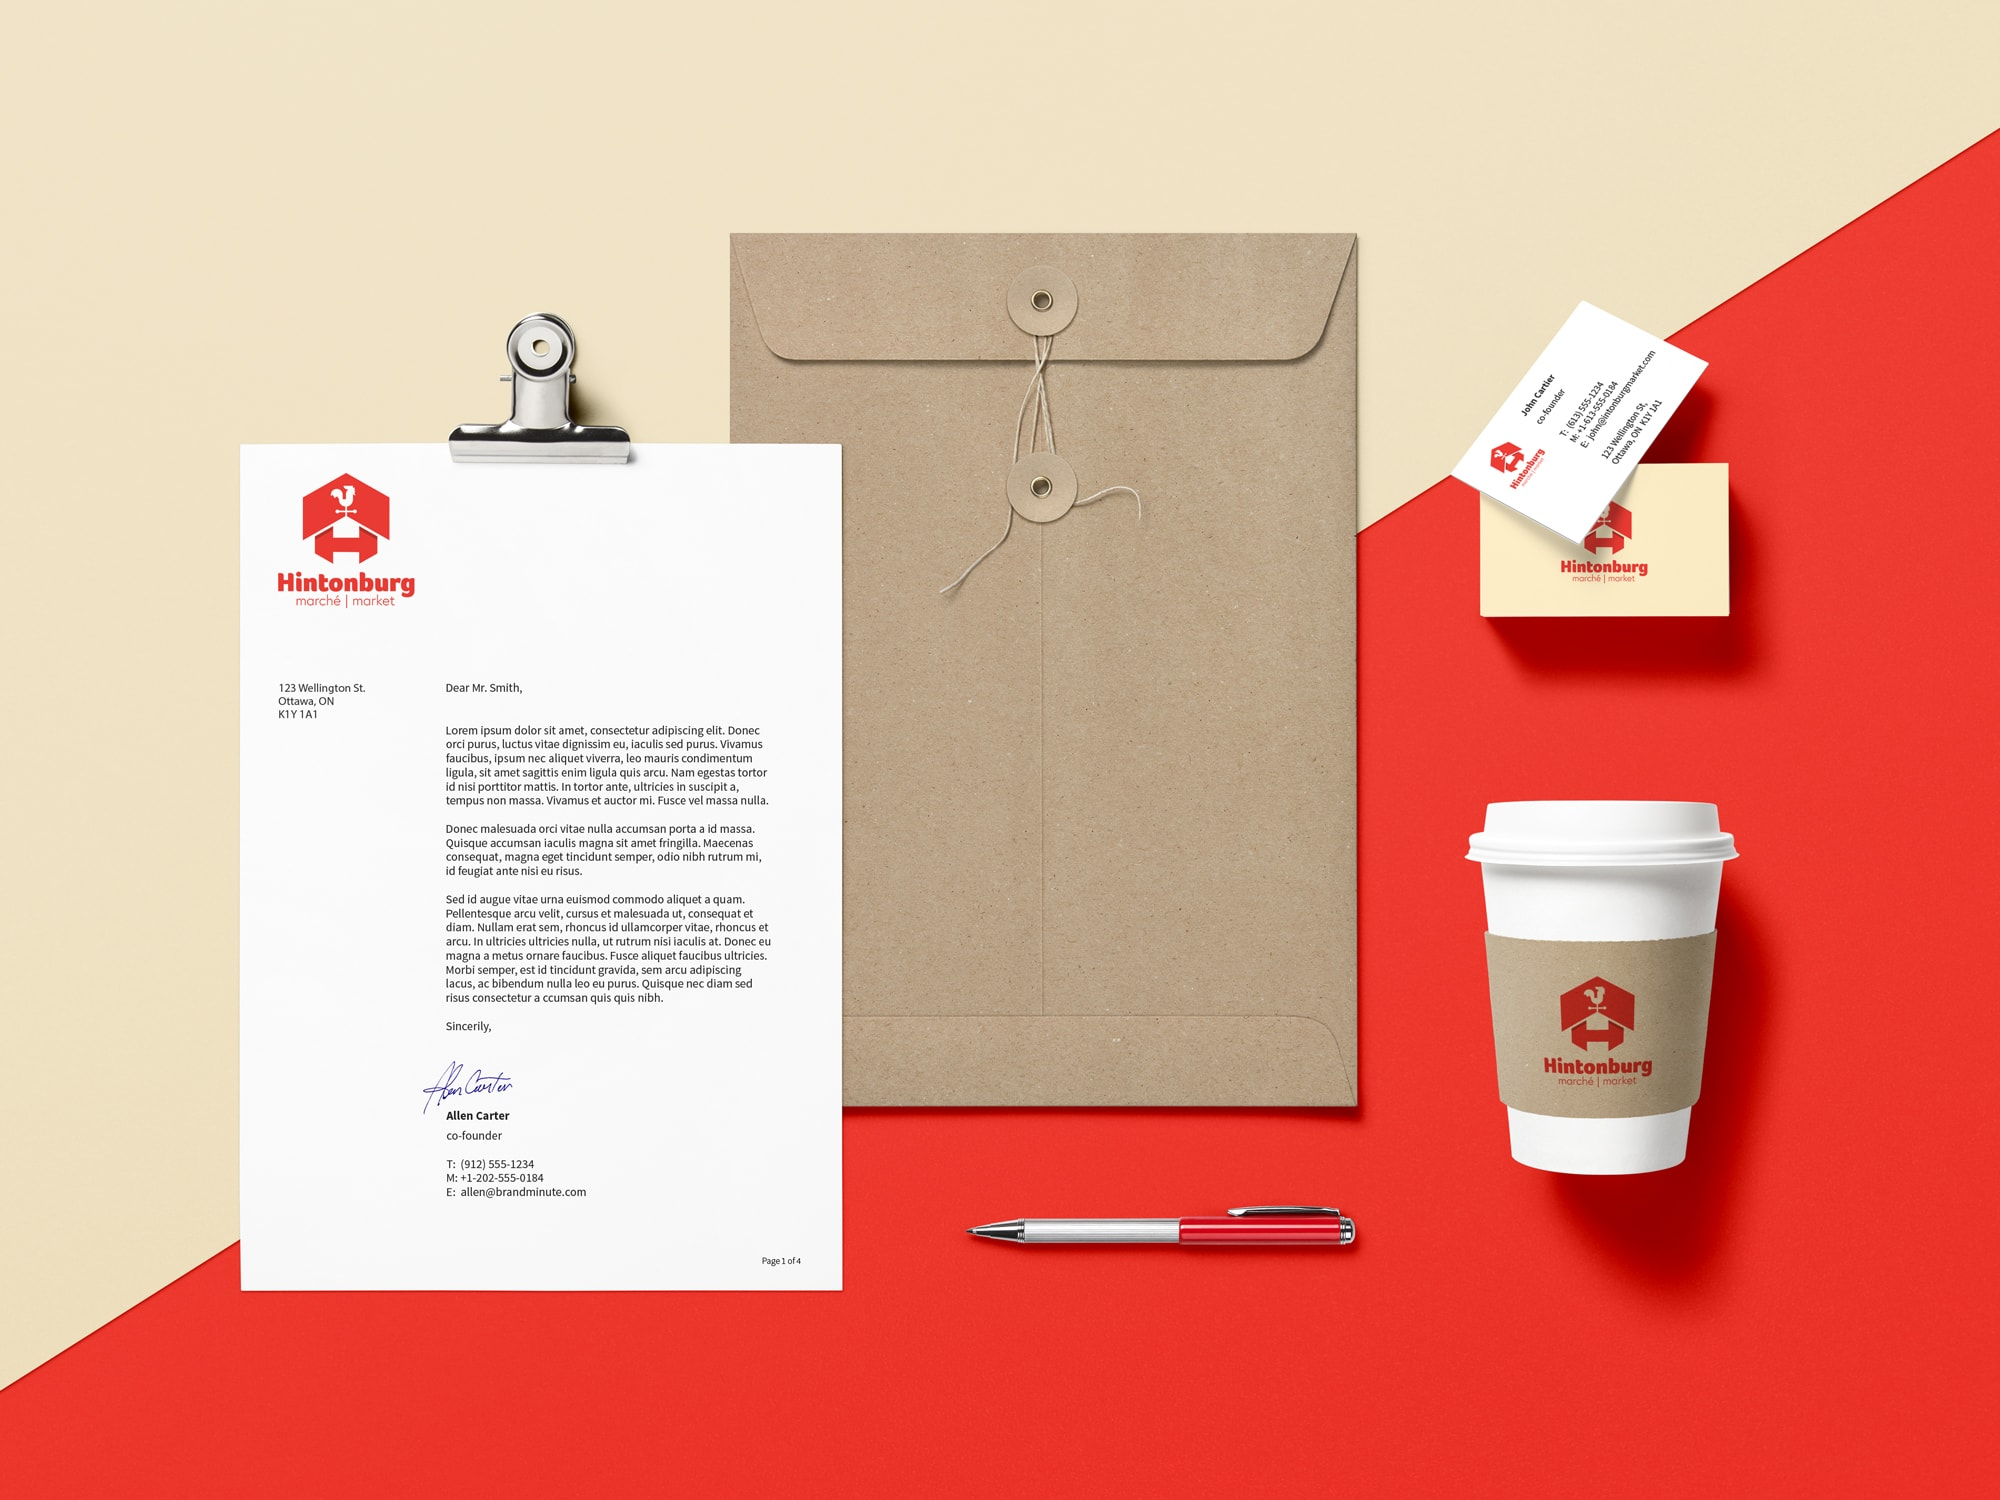 Branding materials including stationery, coffee cup, business card